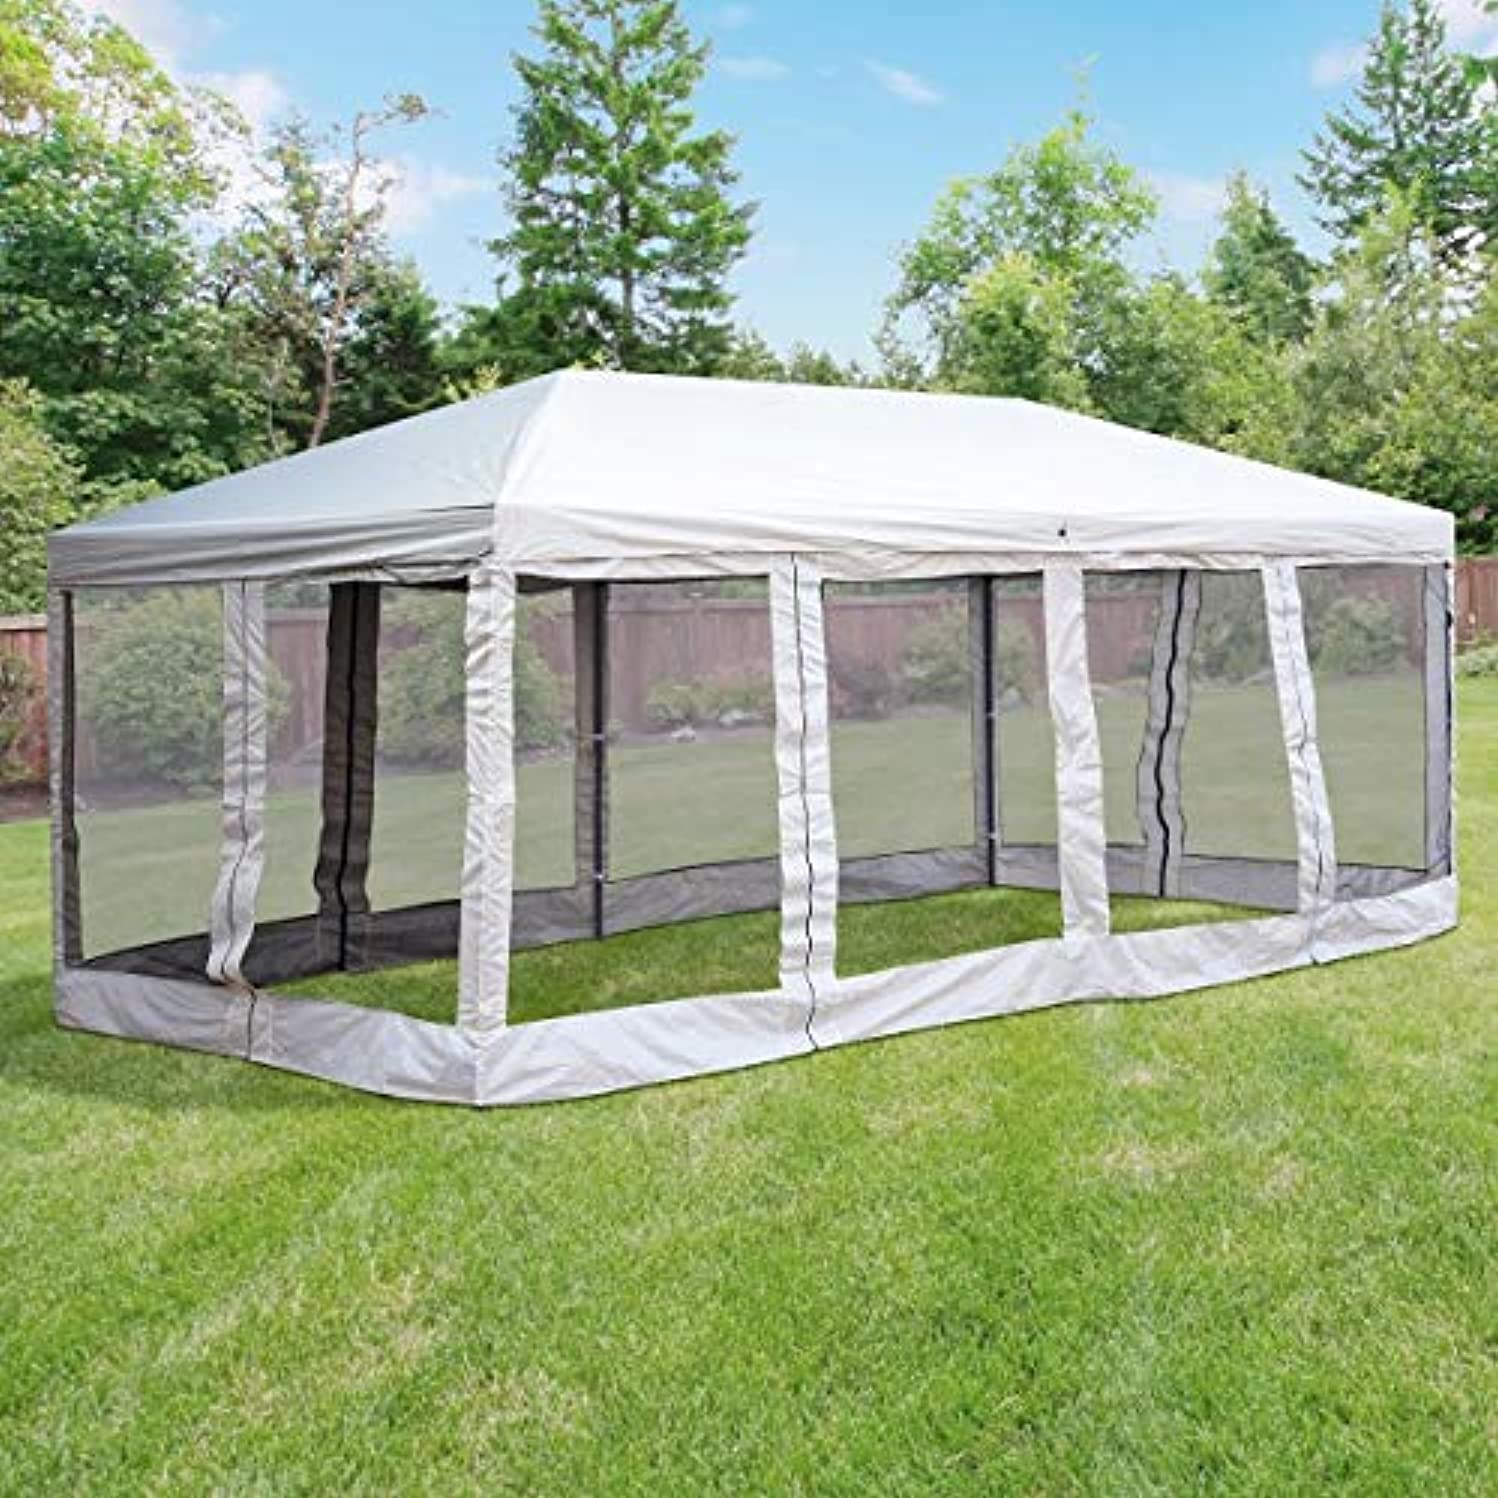 Pop Up Canopy Tent Gazebo 10' x 20' Pavilion Removable Mesh Sidewalls Sun Shade Shelter Wedding Party Outdoor Event Park Garden Patio Beige Carry Bag Foldable Frame